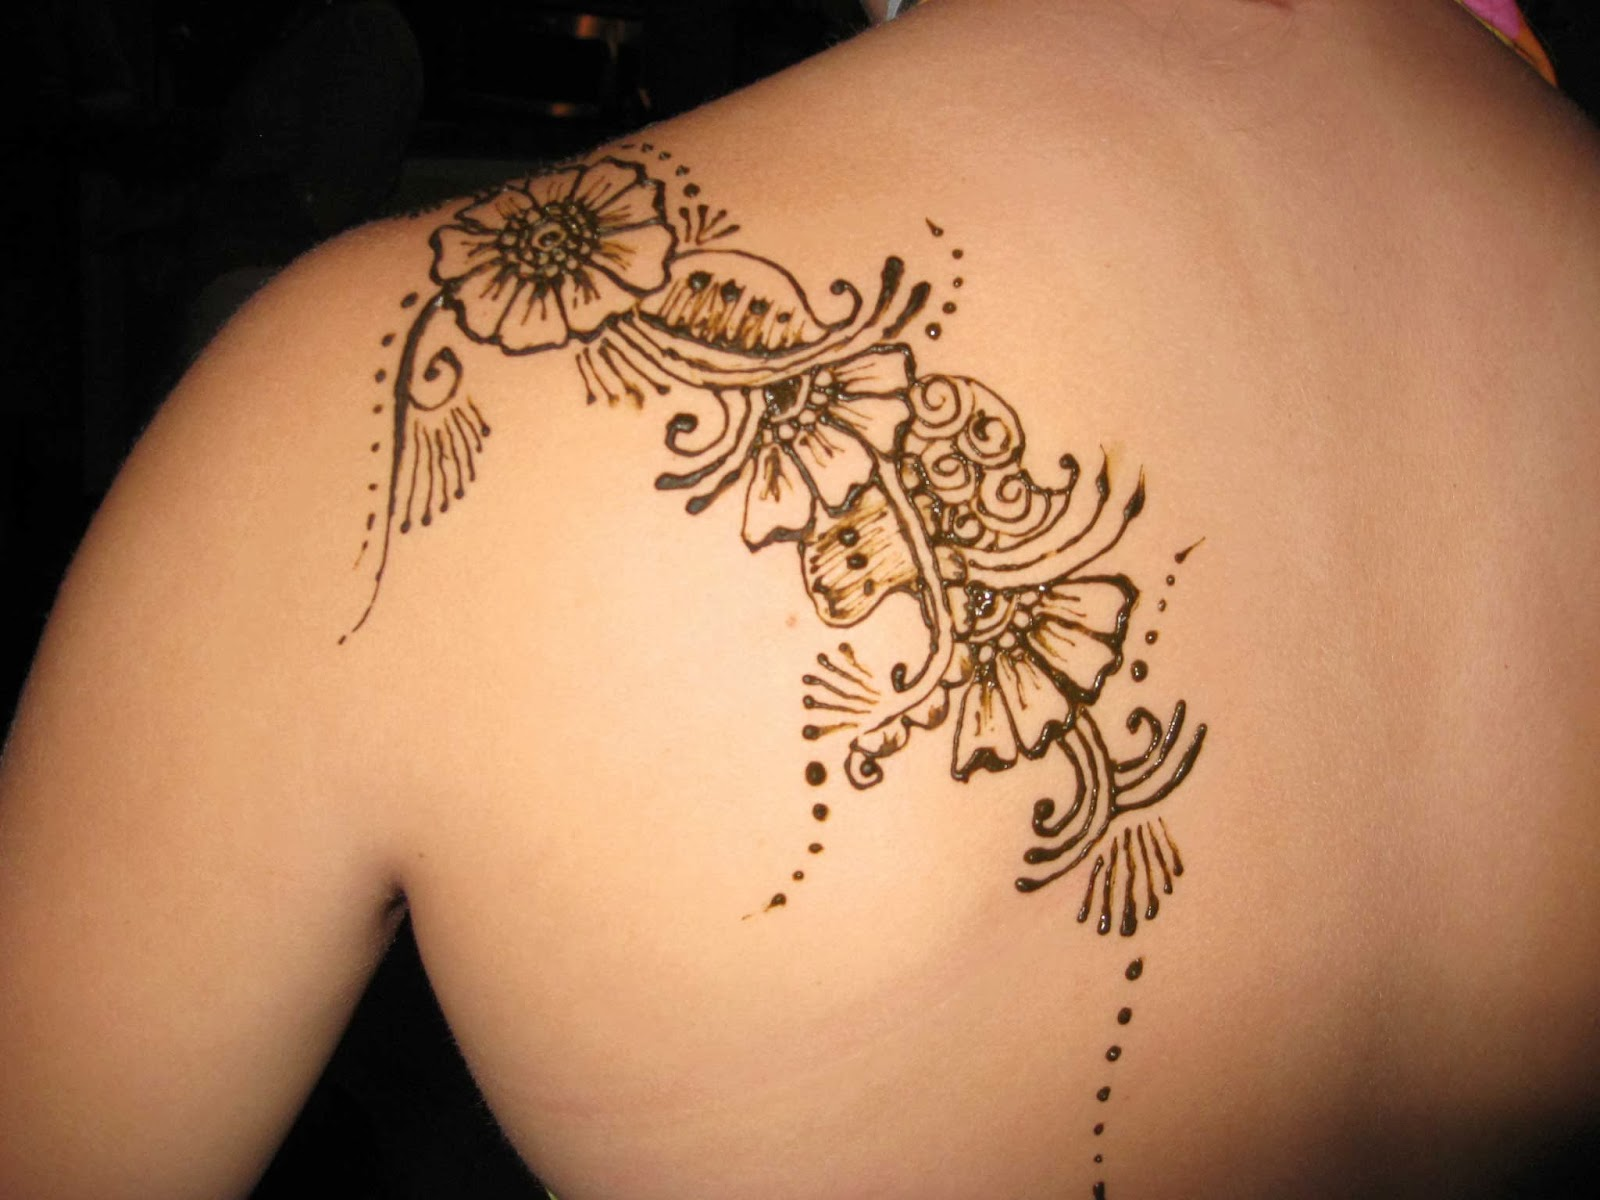 tattooz designs tattoos for girls tattoo designs of a